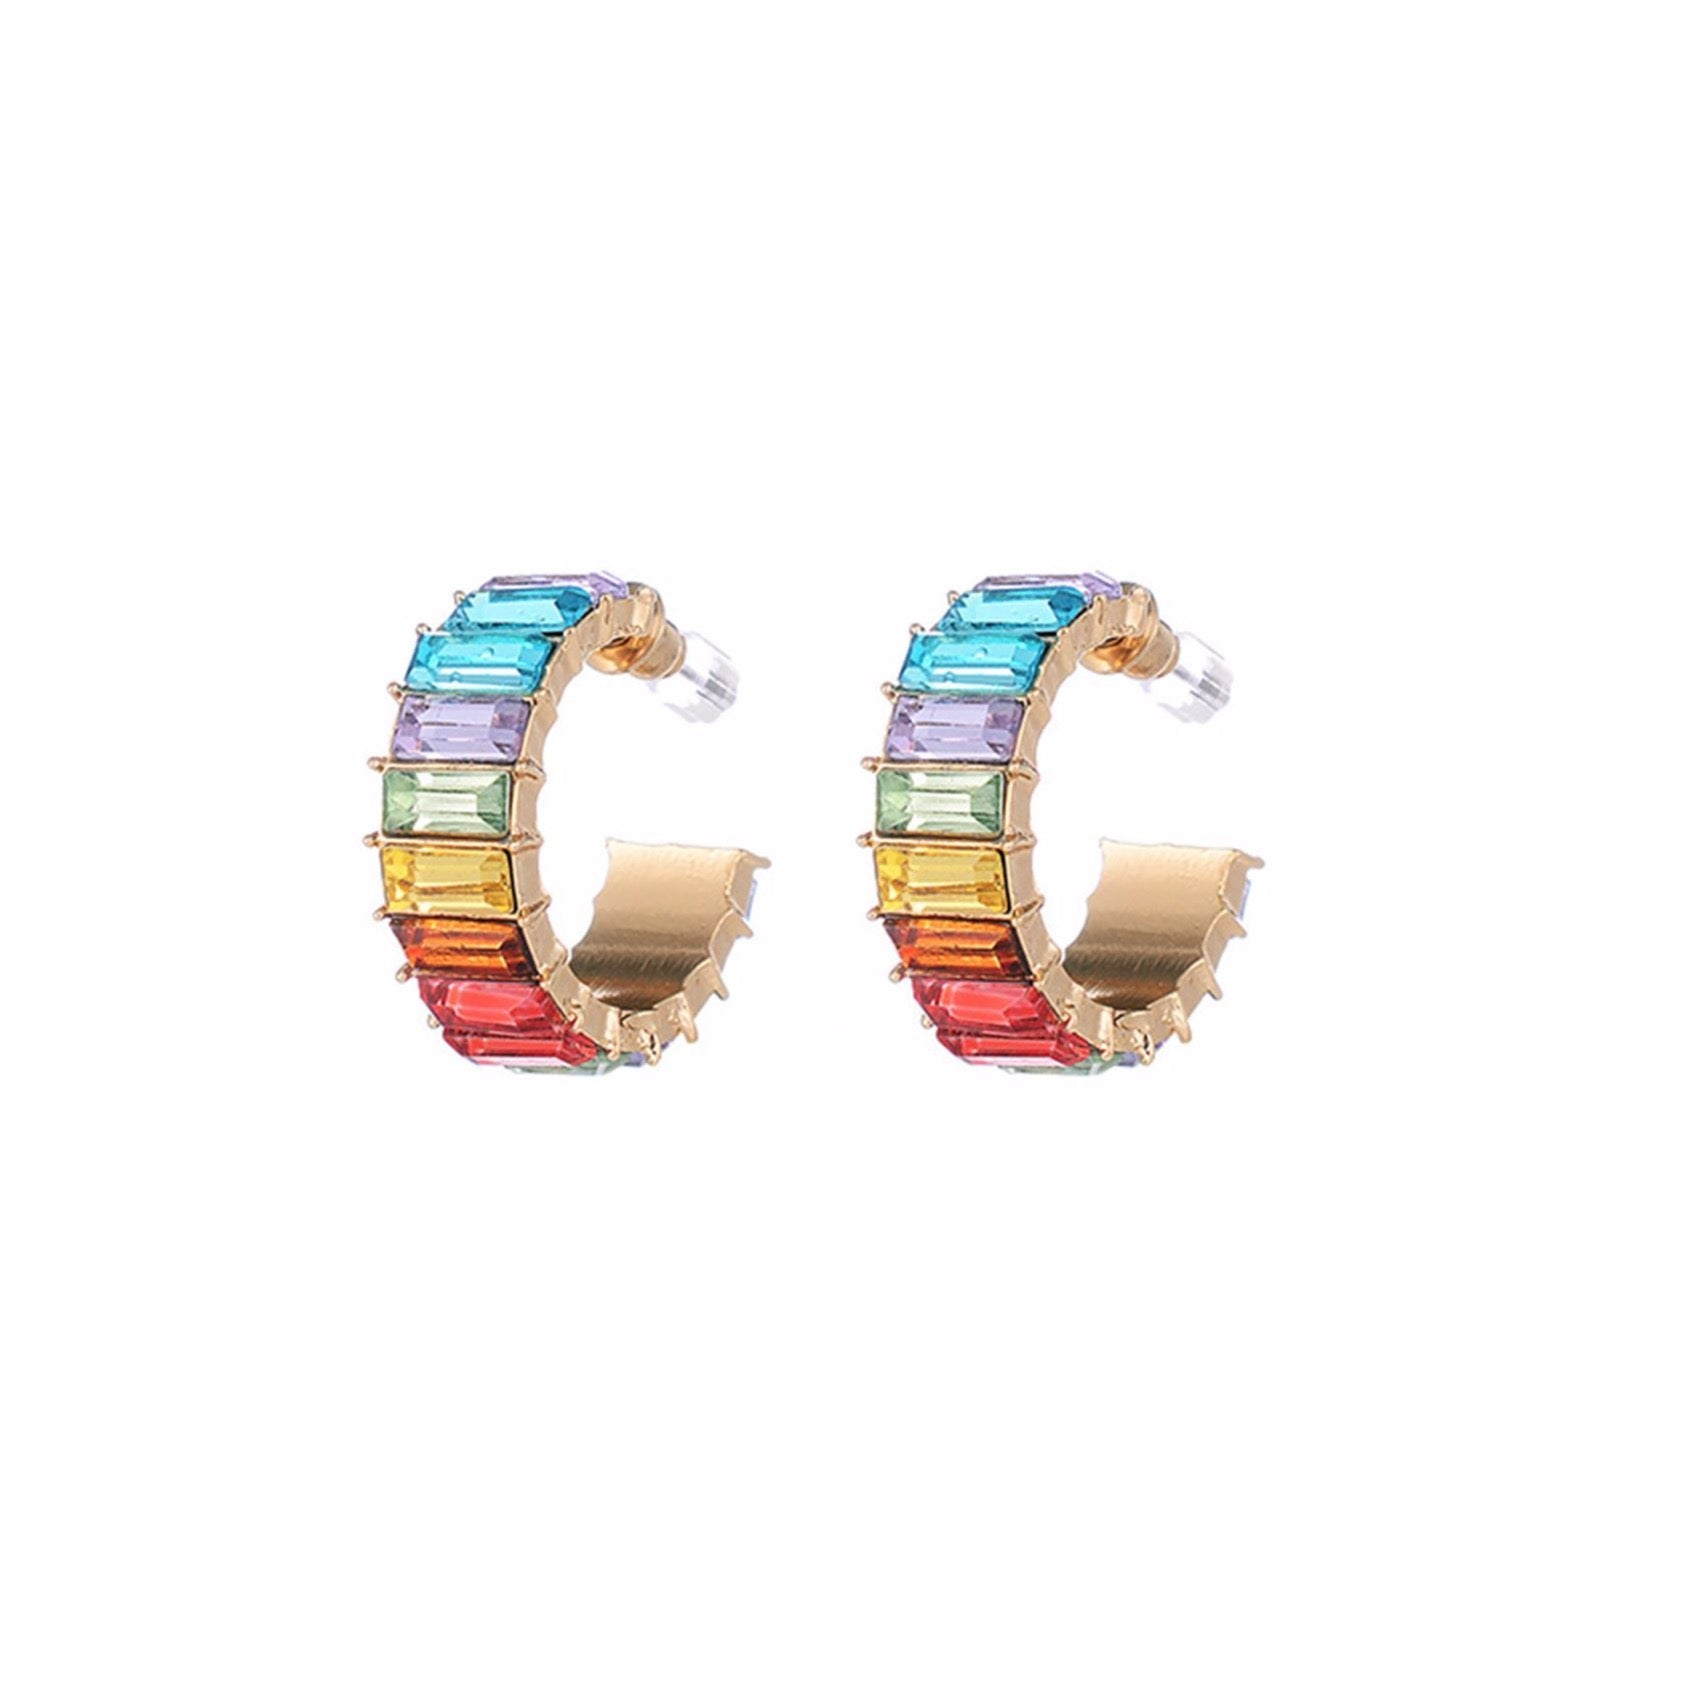 Dazzling rainbow gold tone hoop earrings with multi-colour diamante crystal inlays.